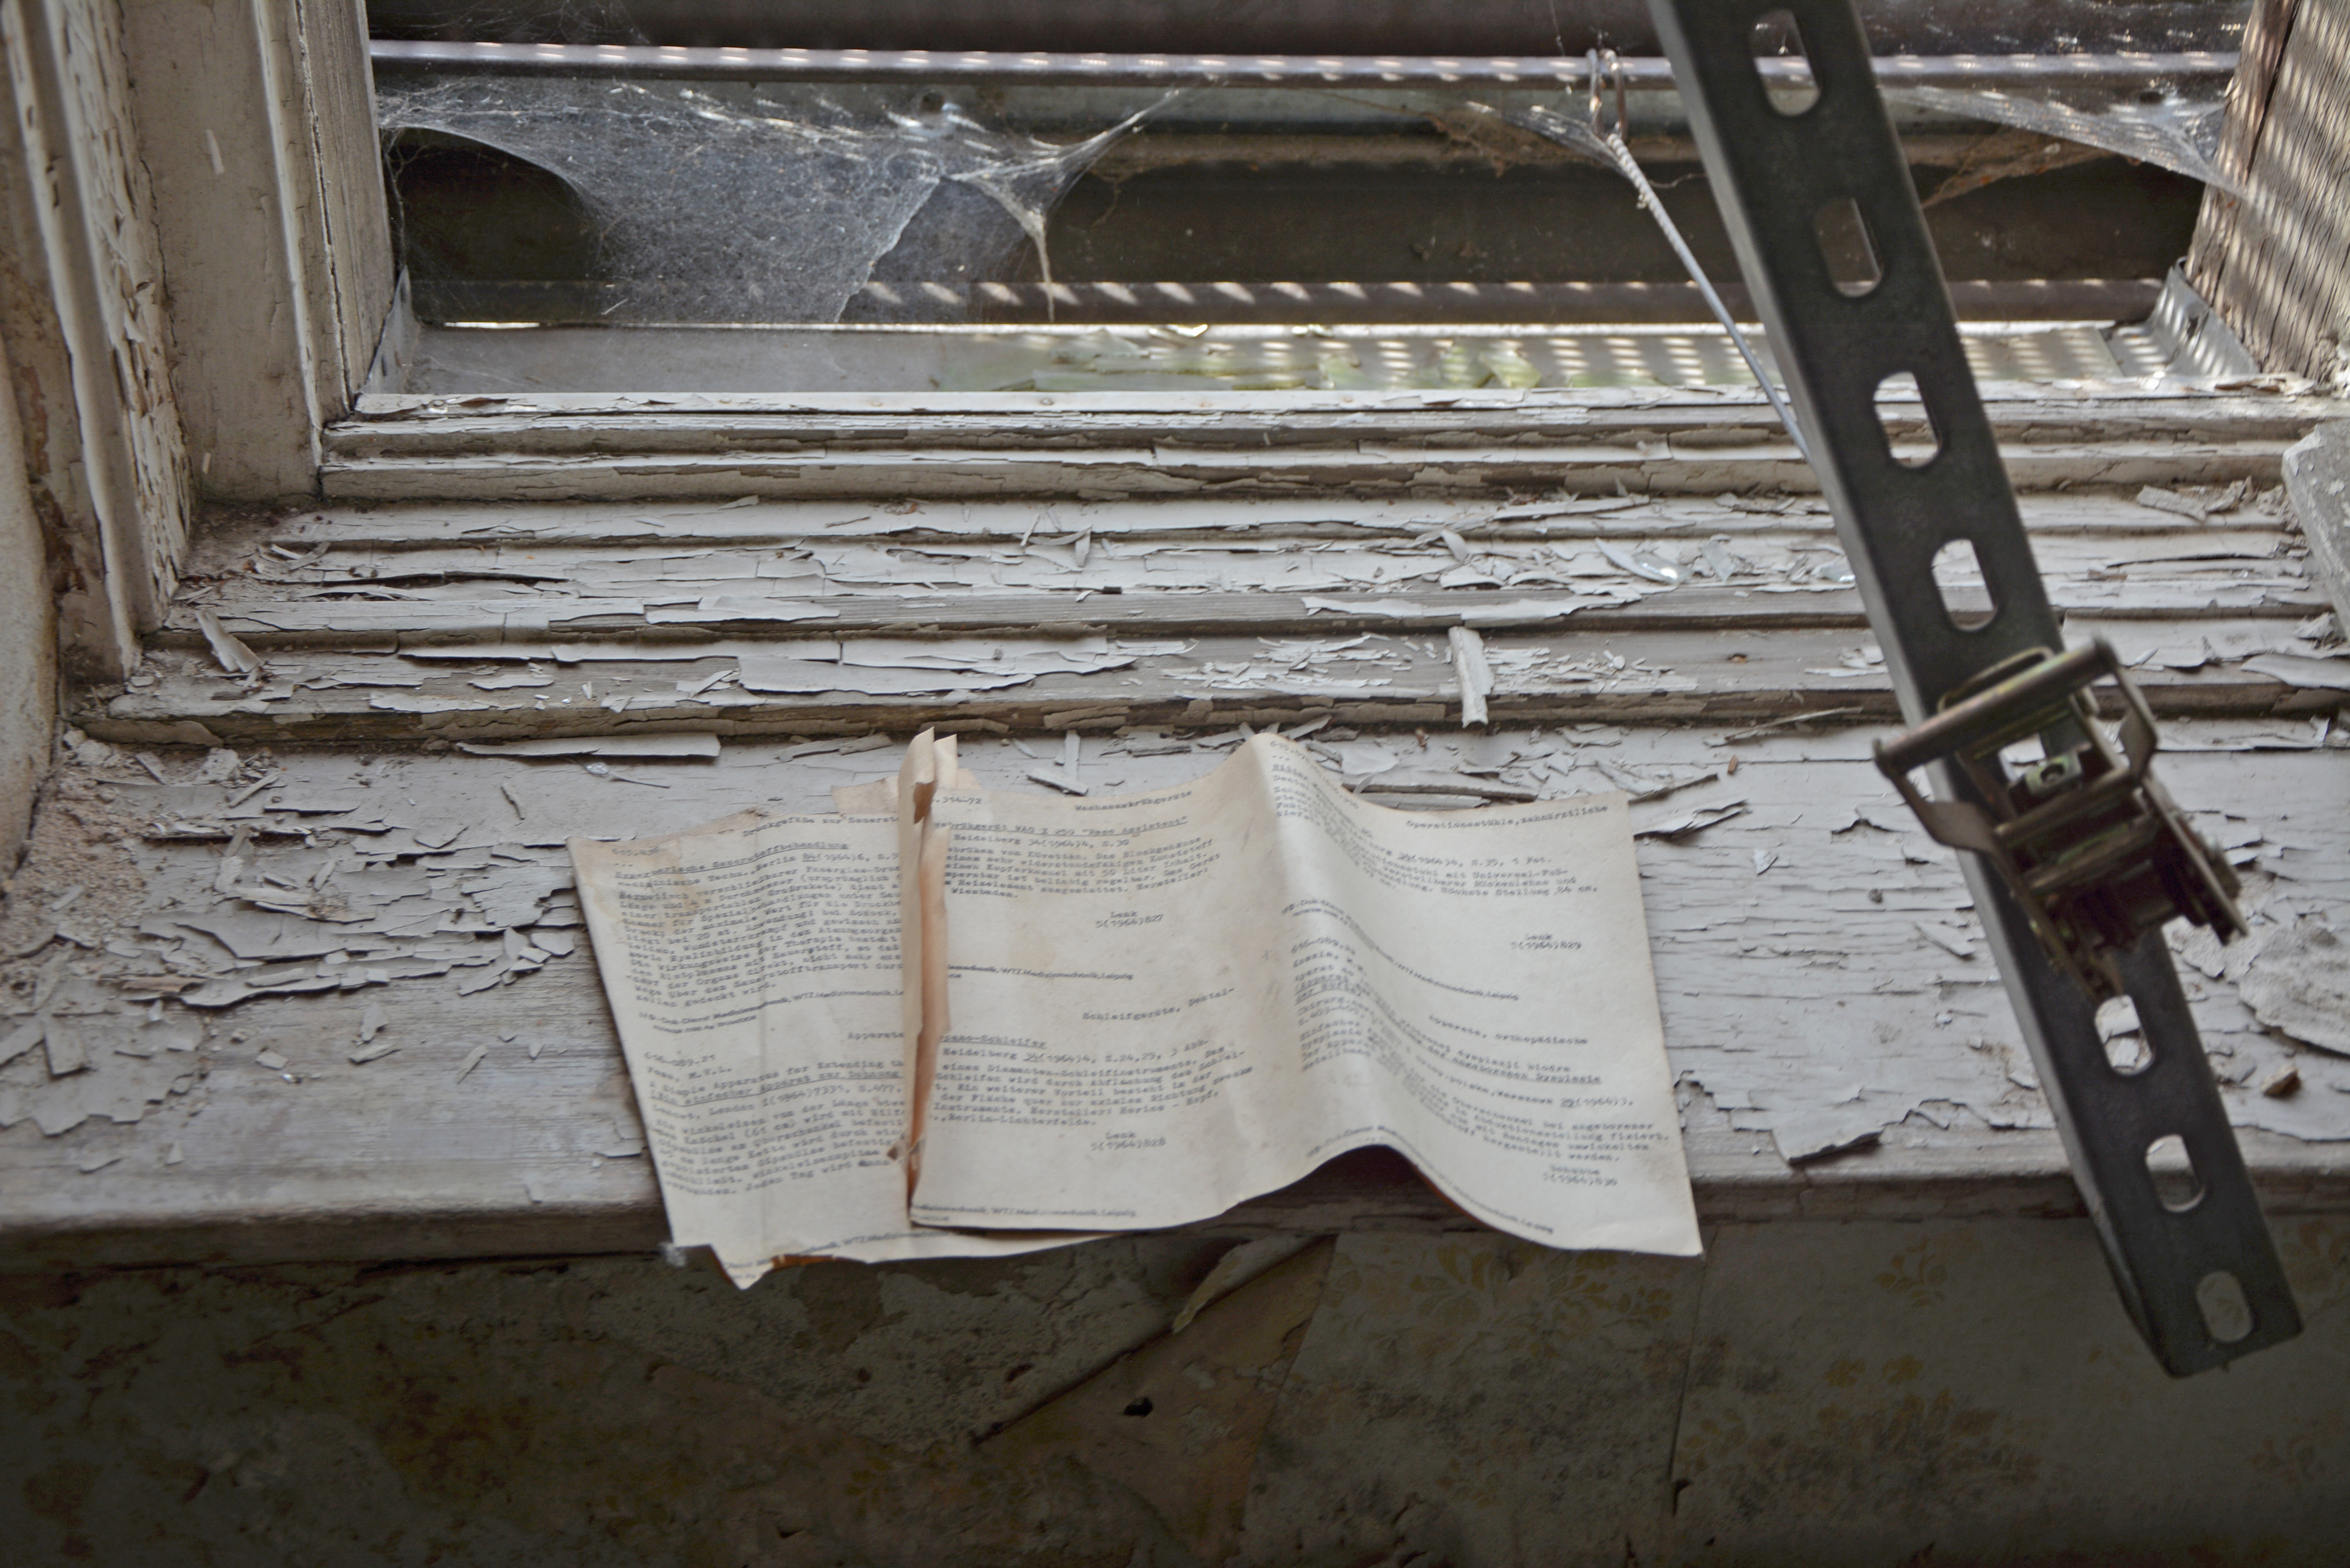 Abandoned Places in Berlin Waldhaus Buch Abandoned Sanatorium Paperwork